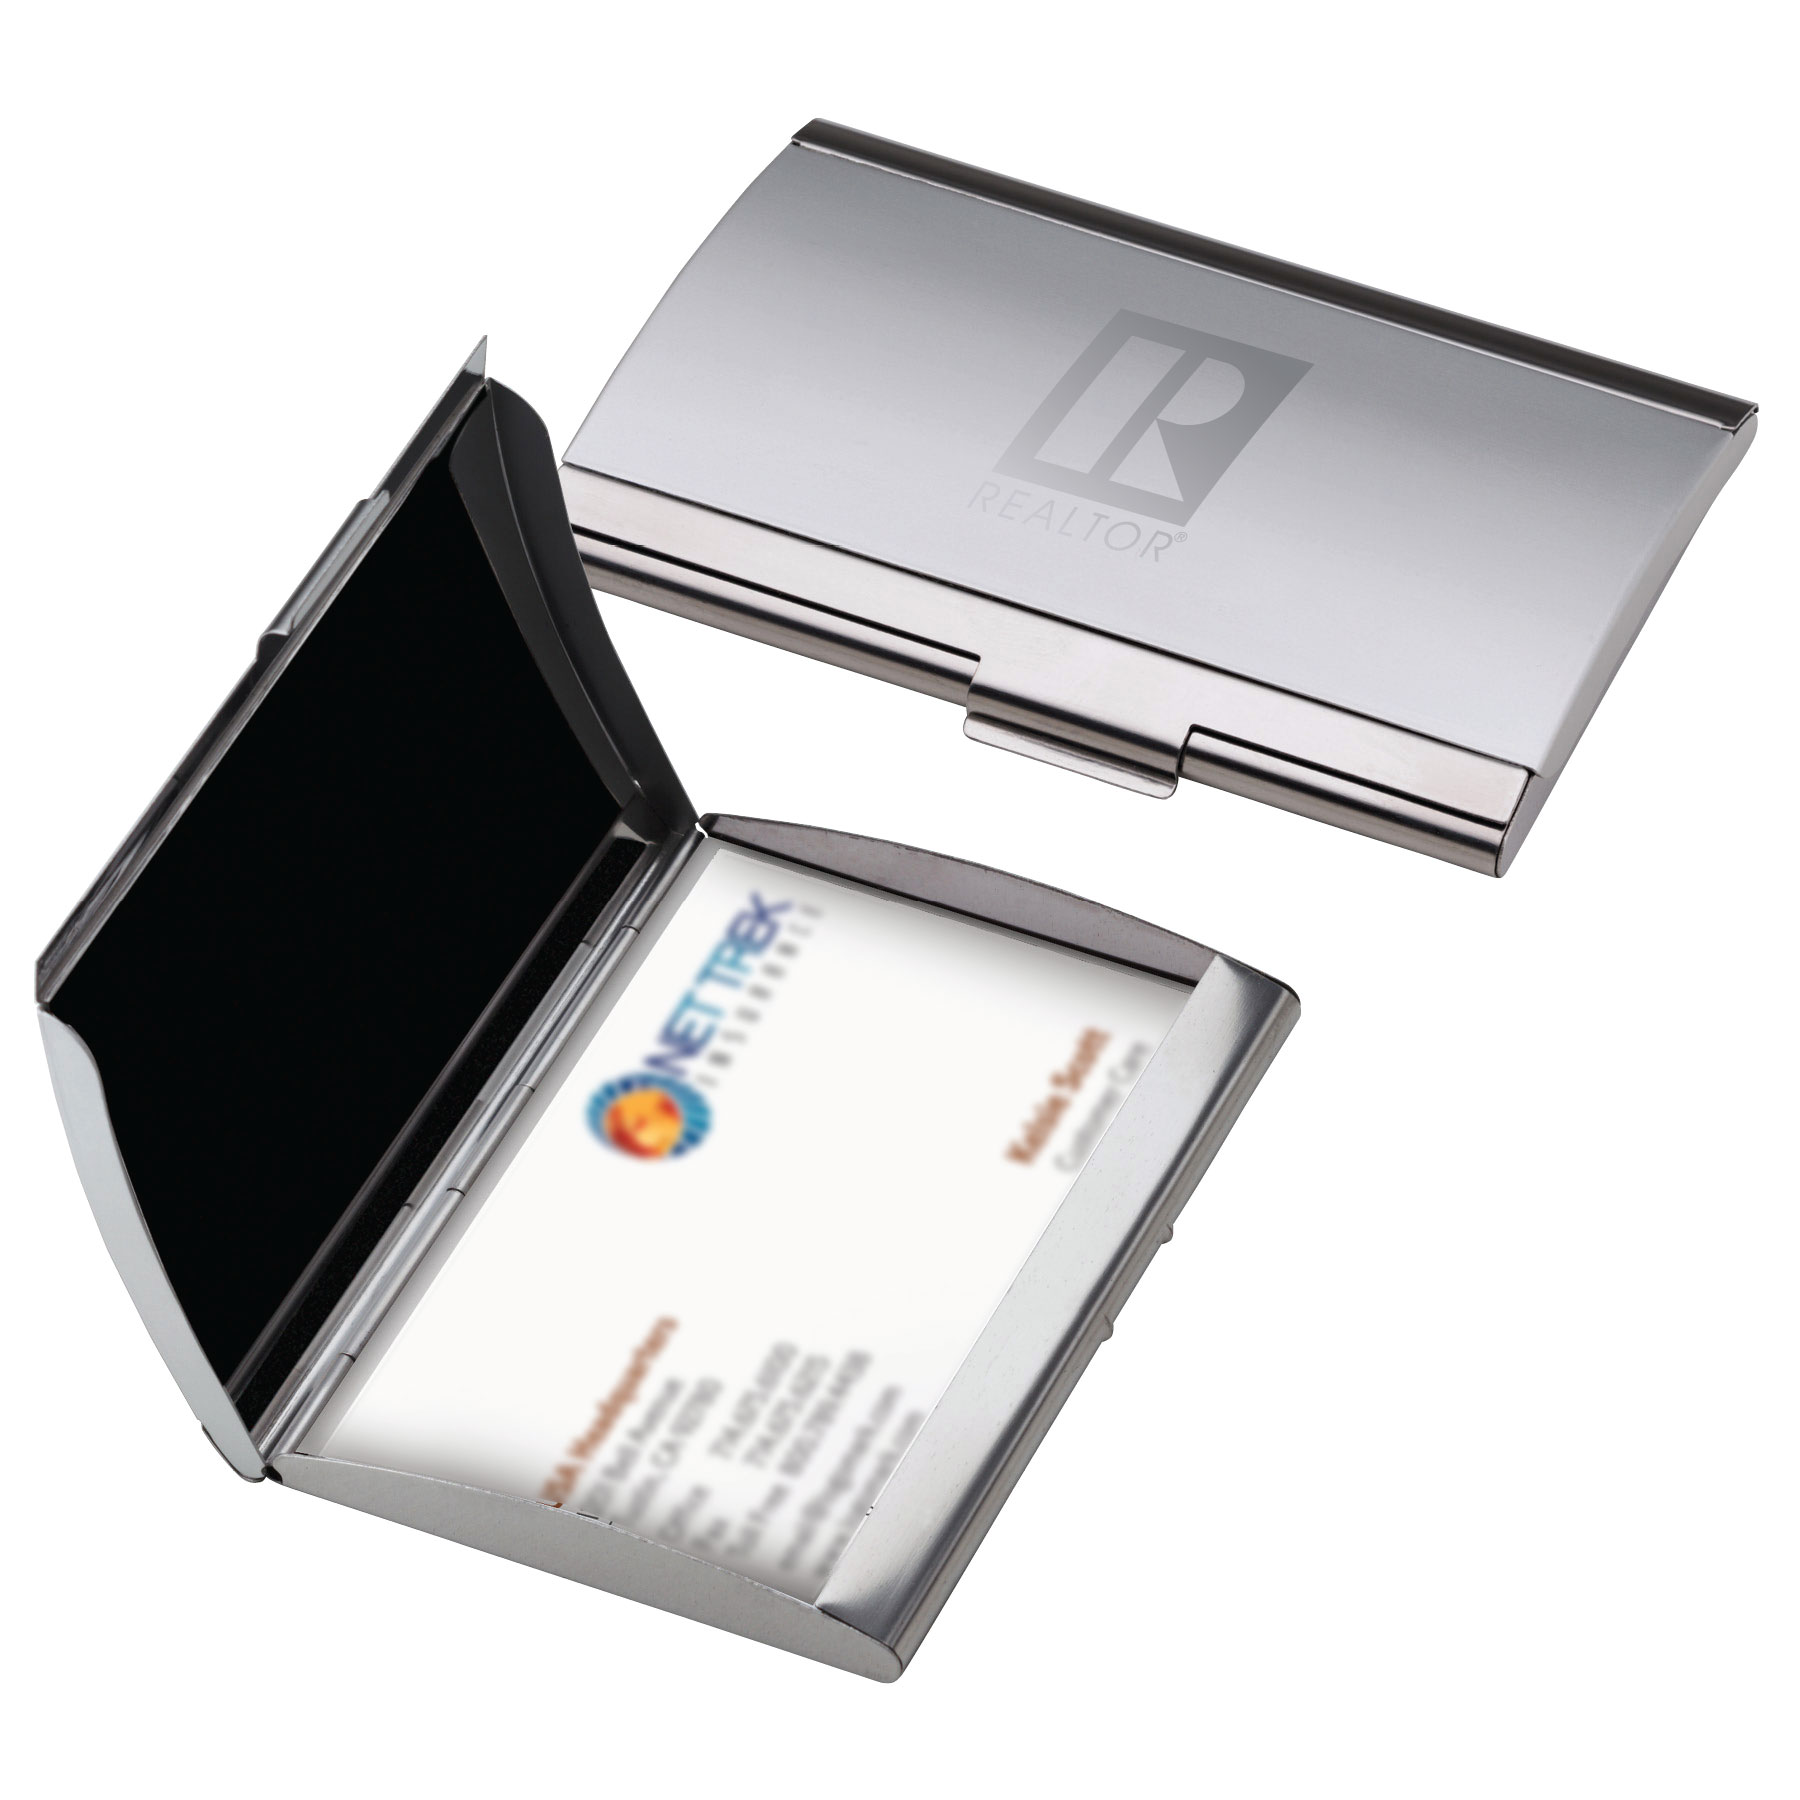 Denver Business Card Case Cards,Busineses,BusinessCards,Holders,Purse,Gift, Association, Store, Board, President